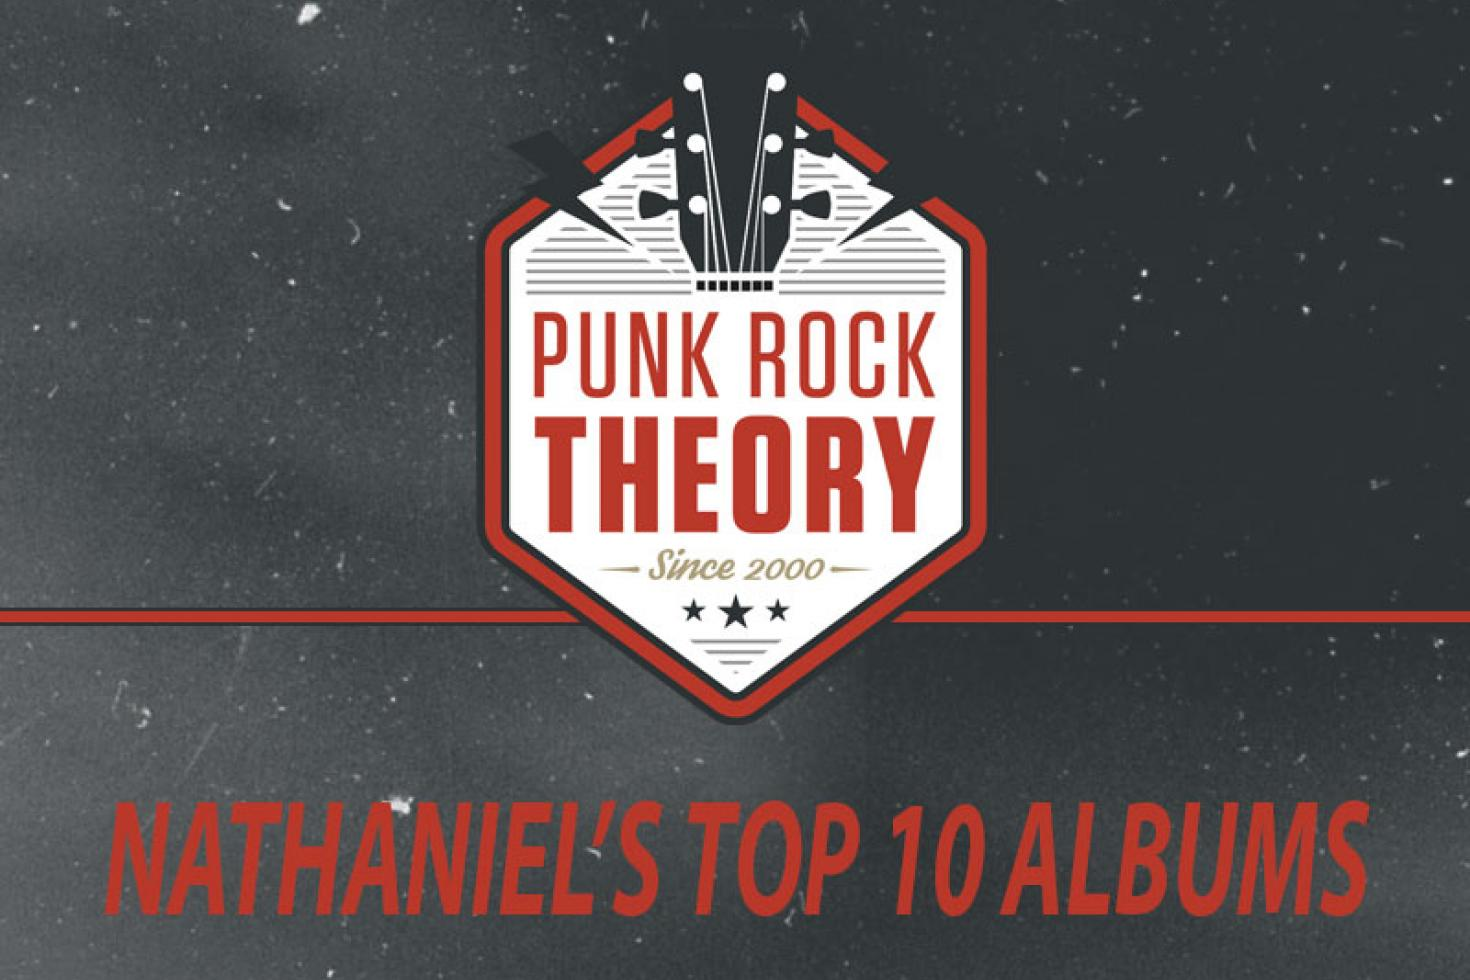 Nathaniel's top 10 albums of 2018